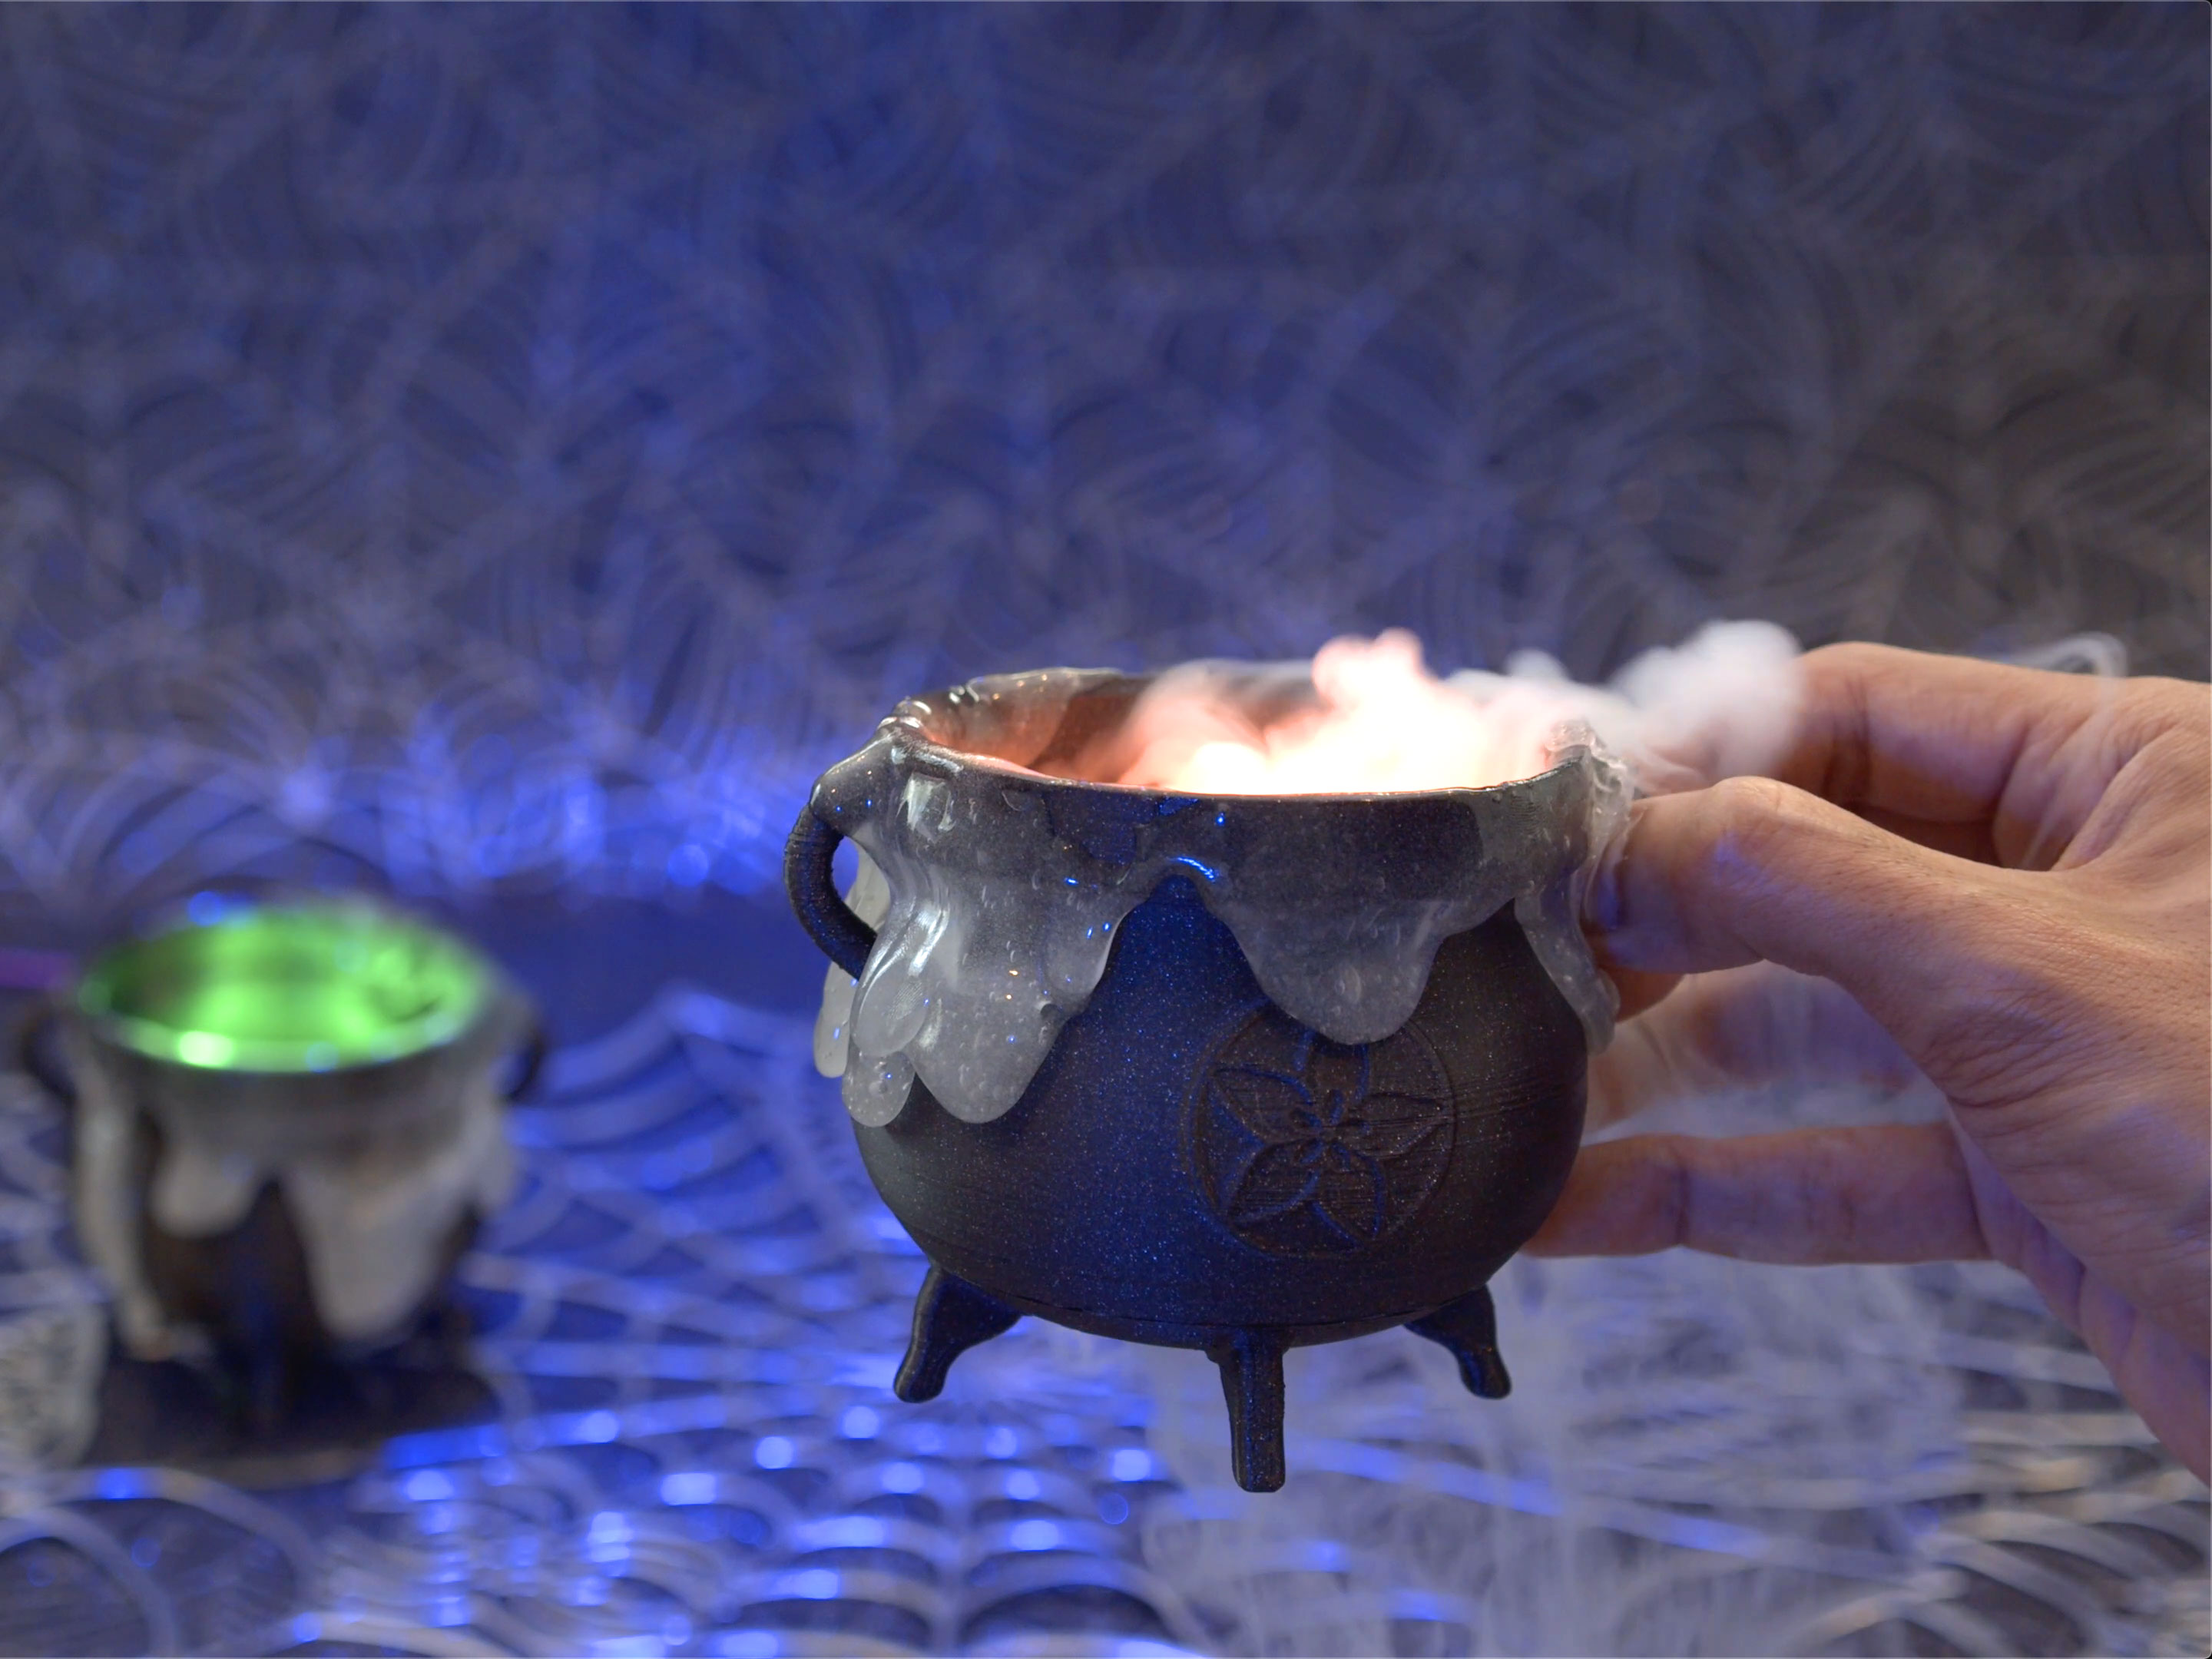 Check Out The Most Adorable Tiny Boiling Halloween Cauldron